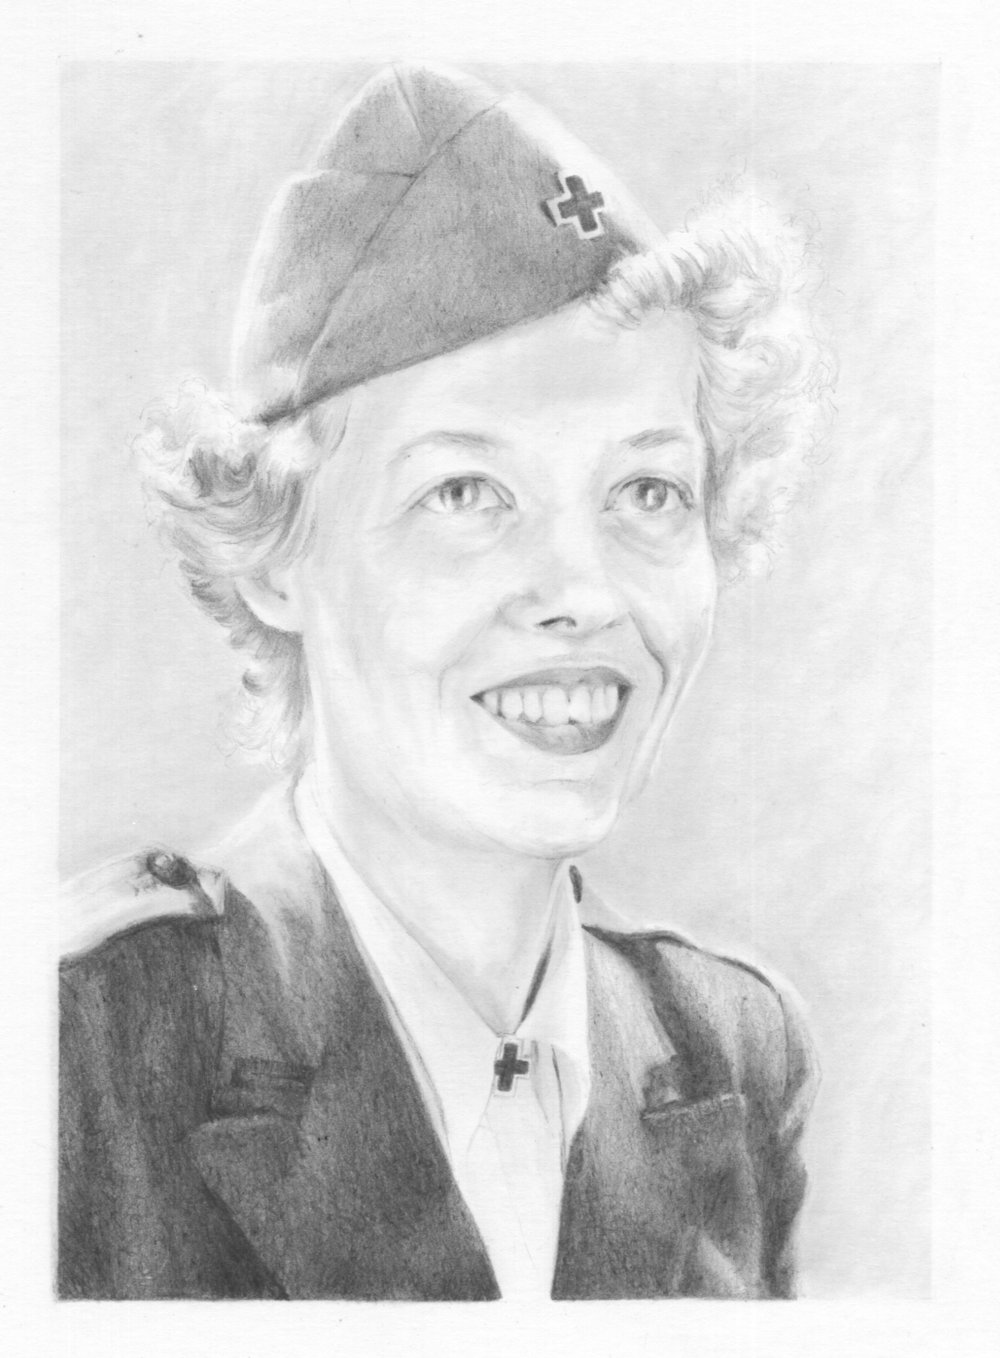 8'' x 10'', Pencil on paper, card  This is Elizabeth Black. A woman from Pittsburgh, who joined the American Red Cross in 1943. She travelled to WWII camps from England to Germany as part of the Clubmobile brigades, dispensing coffee and doughnuts, and helping to raise morale. In 1944 she wrote a proposal to Washington to sketch the portraits of the servicemen she came across, and send the drawings back to their loved ones at home.  70 years later, in a chest left in a relative's garage, 100 photographic copies of some of the 1000 sketches she made, were discovered. With them were the notebooks filled by her subjects, many of whom whilst signing and providing home addresses, had left personal messages and poems to her. And along with these, were the letters that she had in turn received from the recipients of those portraits - the mothers, wives, sisters.  It is known that in some cases, though not quite how many, the soldiers had already died before the portrait had reached their families back home.  And that some families still have the sketches hanging in their homes, unaware of who Elizabeth Black was.    (Click on the image to visit Janie's website).